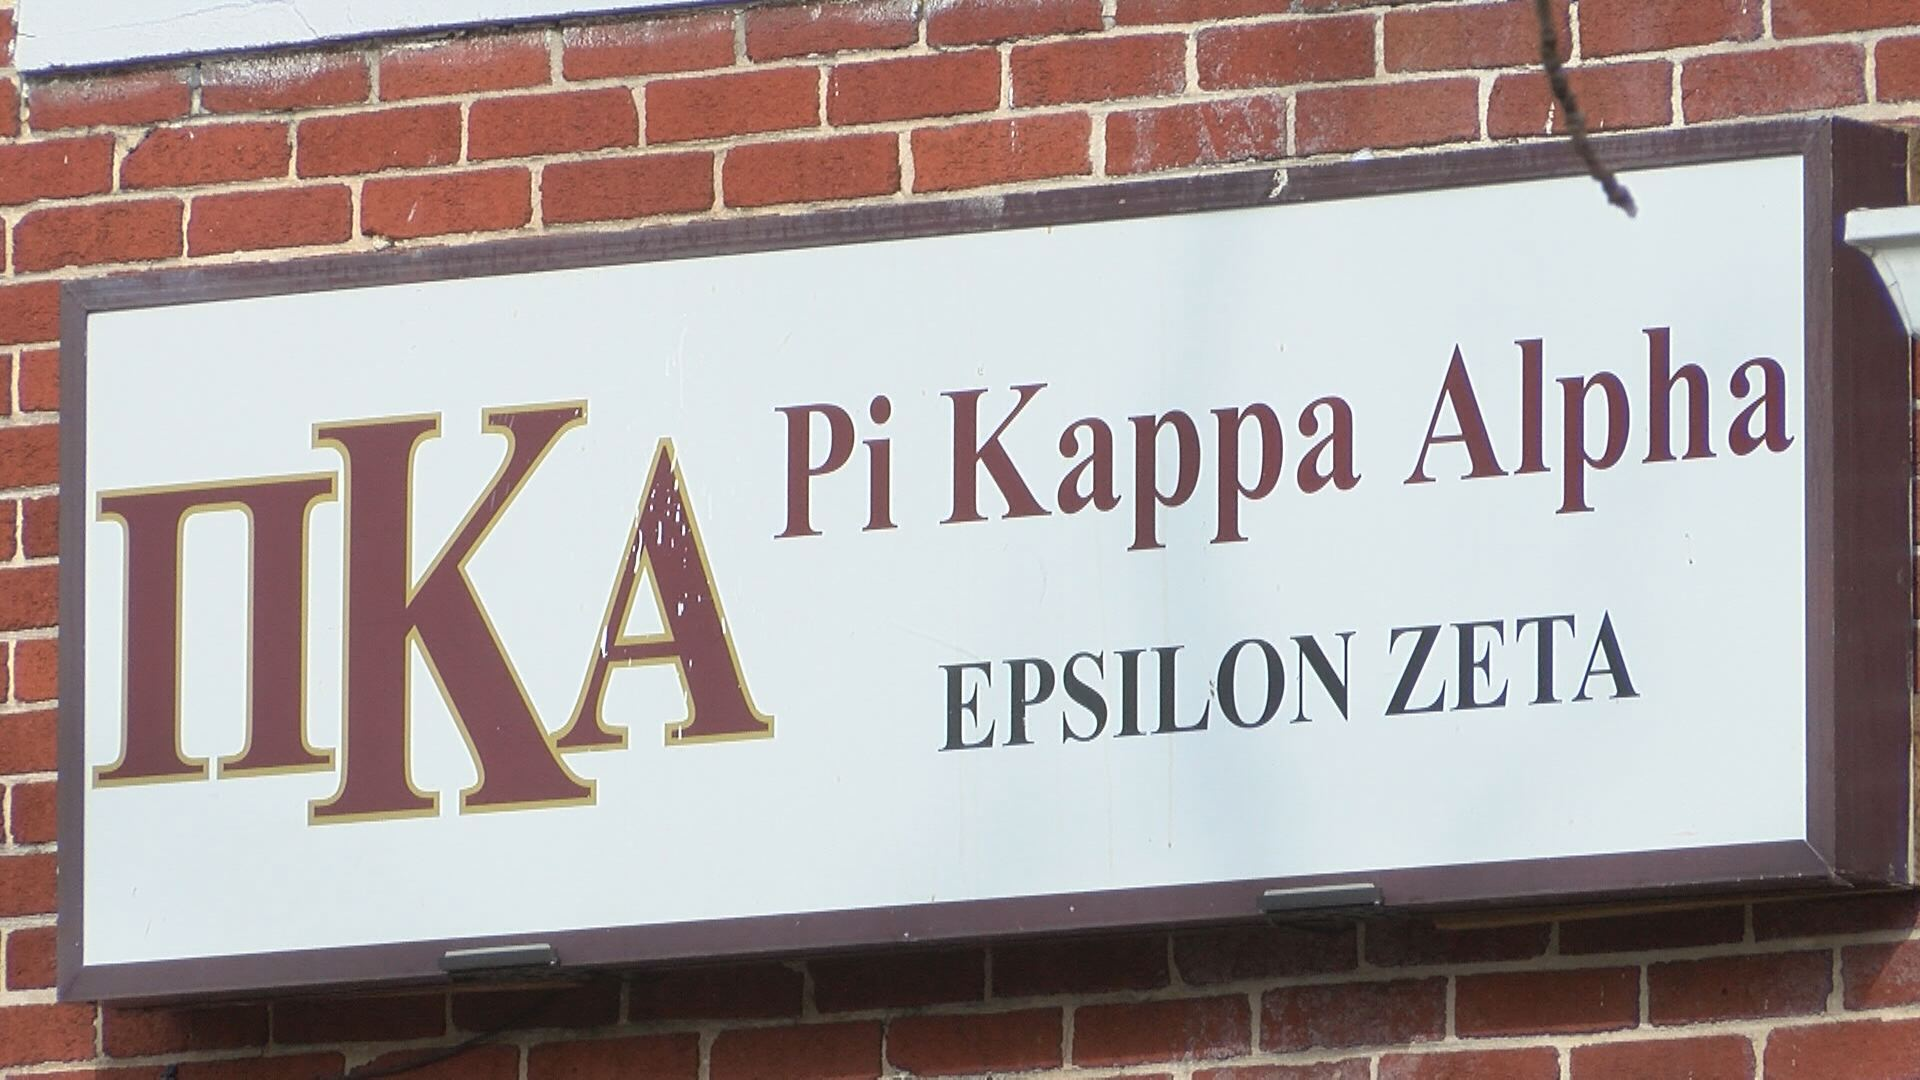 Pi Kappa Alpha's ETSU chapter was suspended from campus activities in 2016, due to parties it held while on probation. (WCYB)